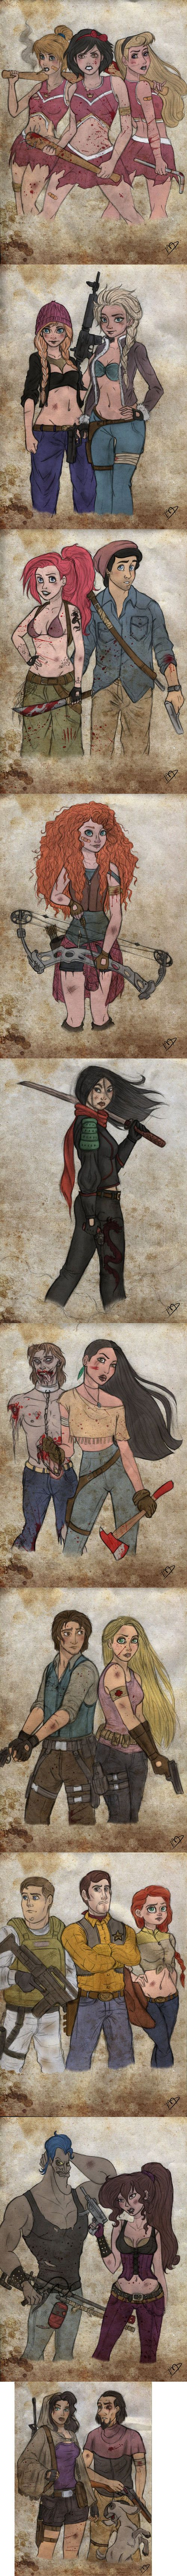 The Walking Disney- not a Walking Dead fan but this is cool